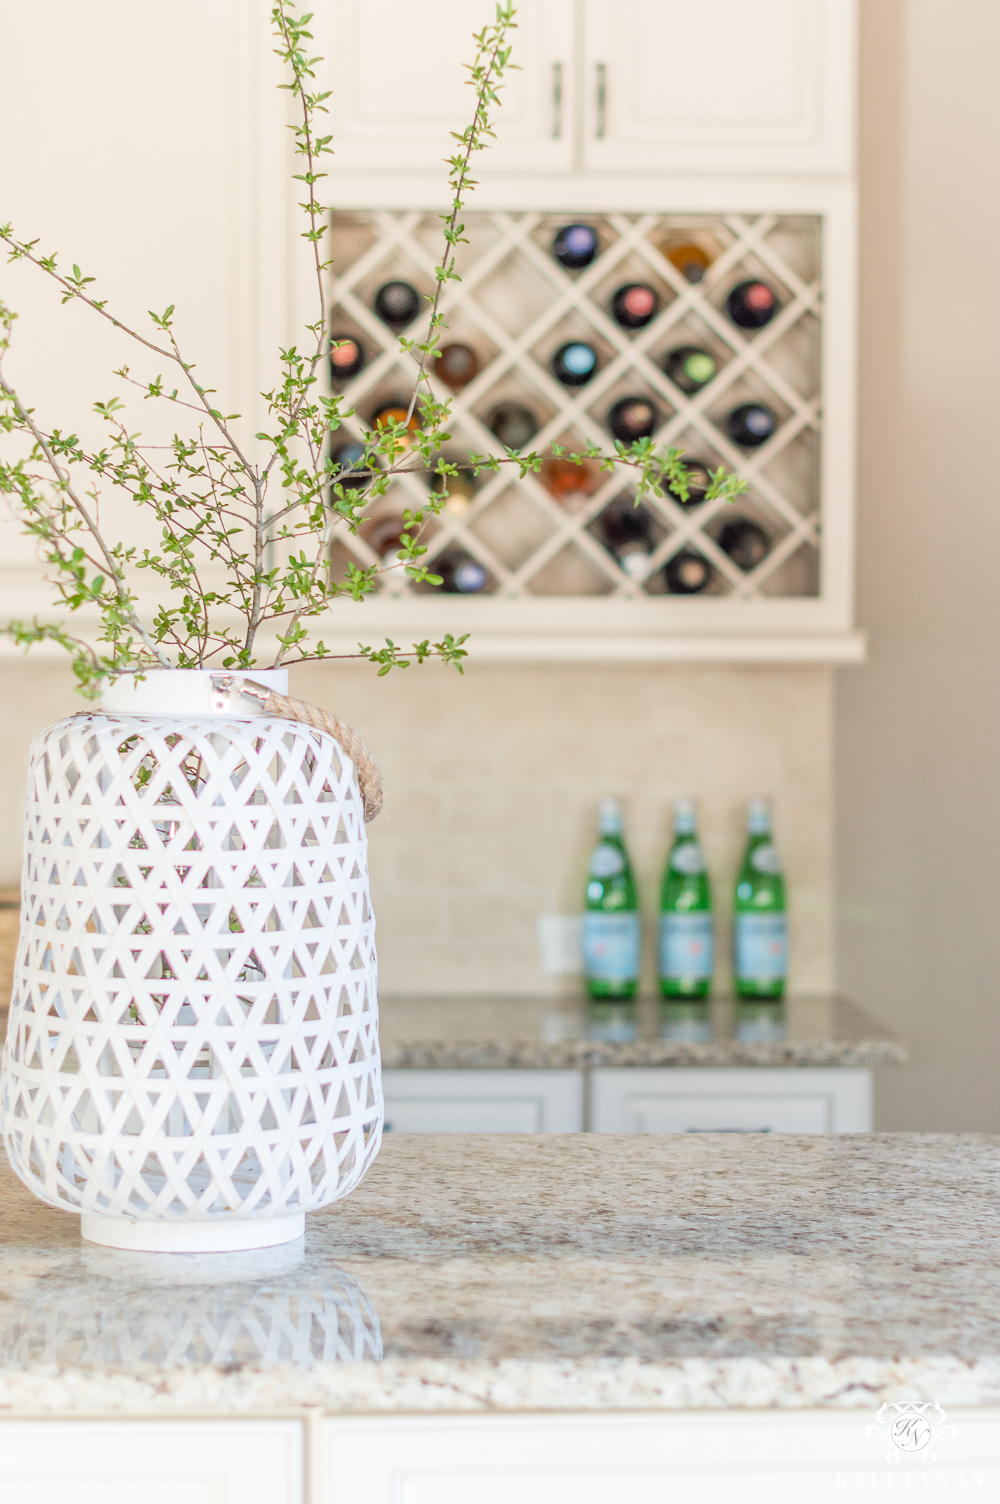 White Bamboo Lantern with Green Branches on Kitchen Island